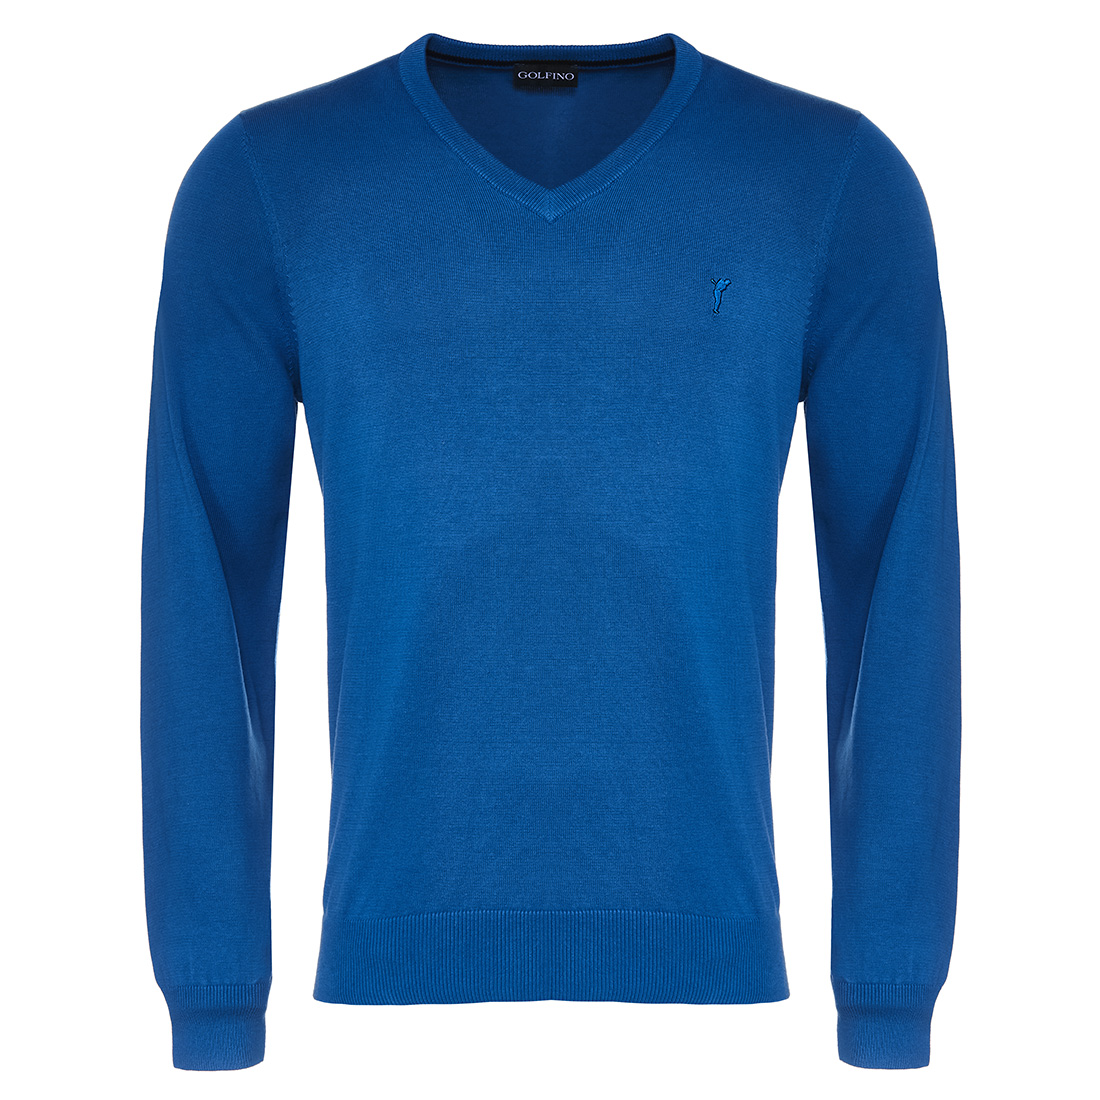 Men's knitted pullover with V-neckline made from soft cotton